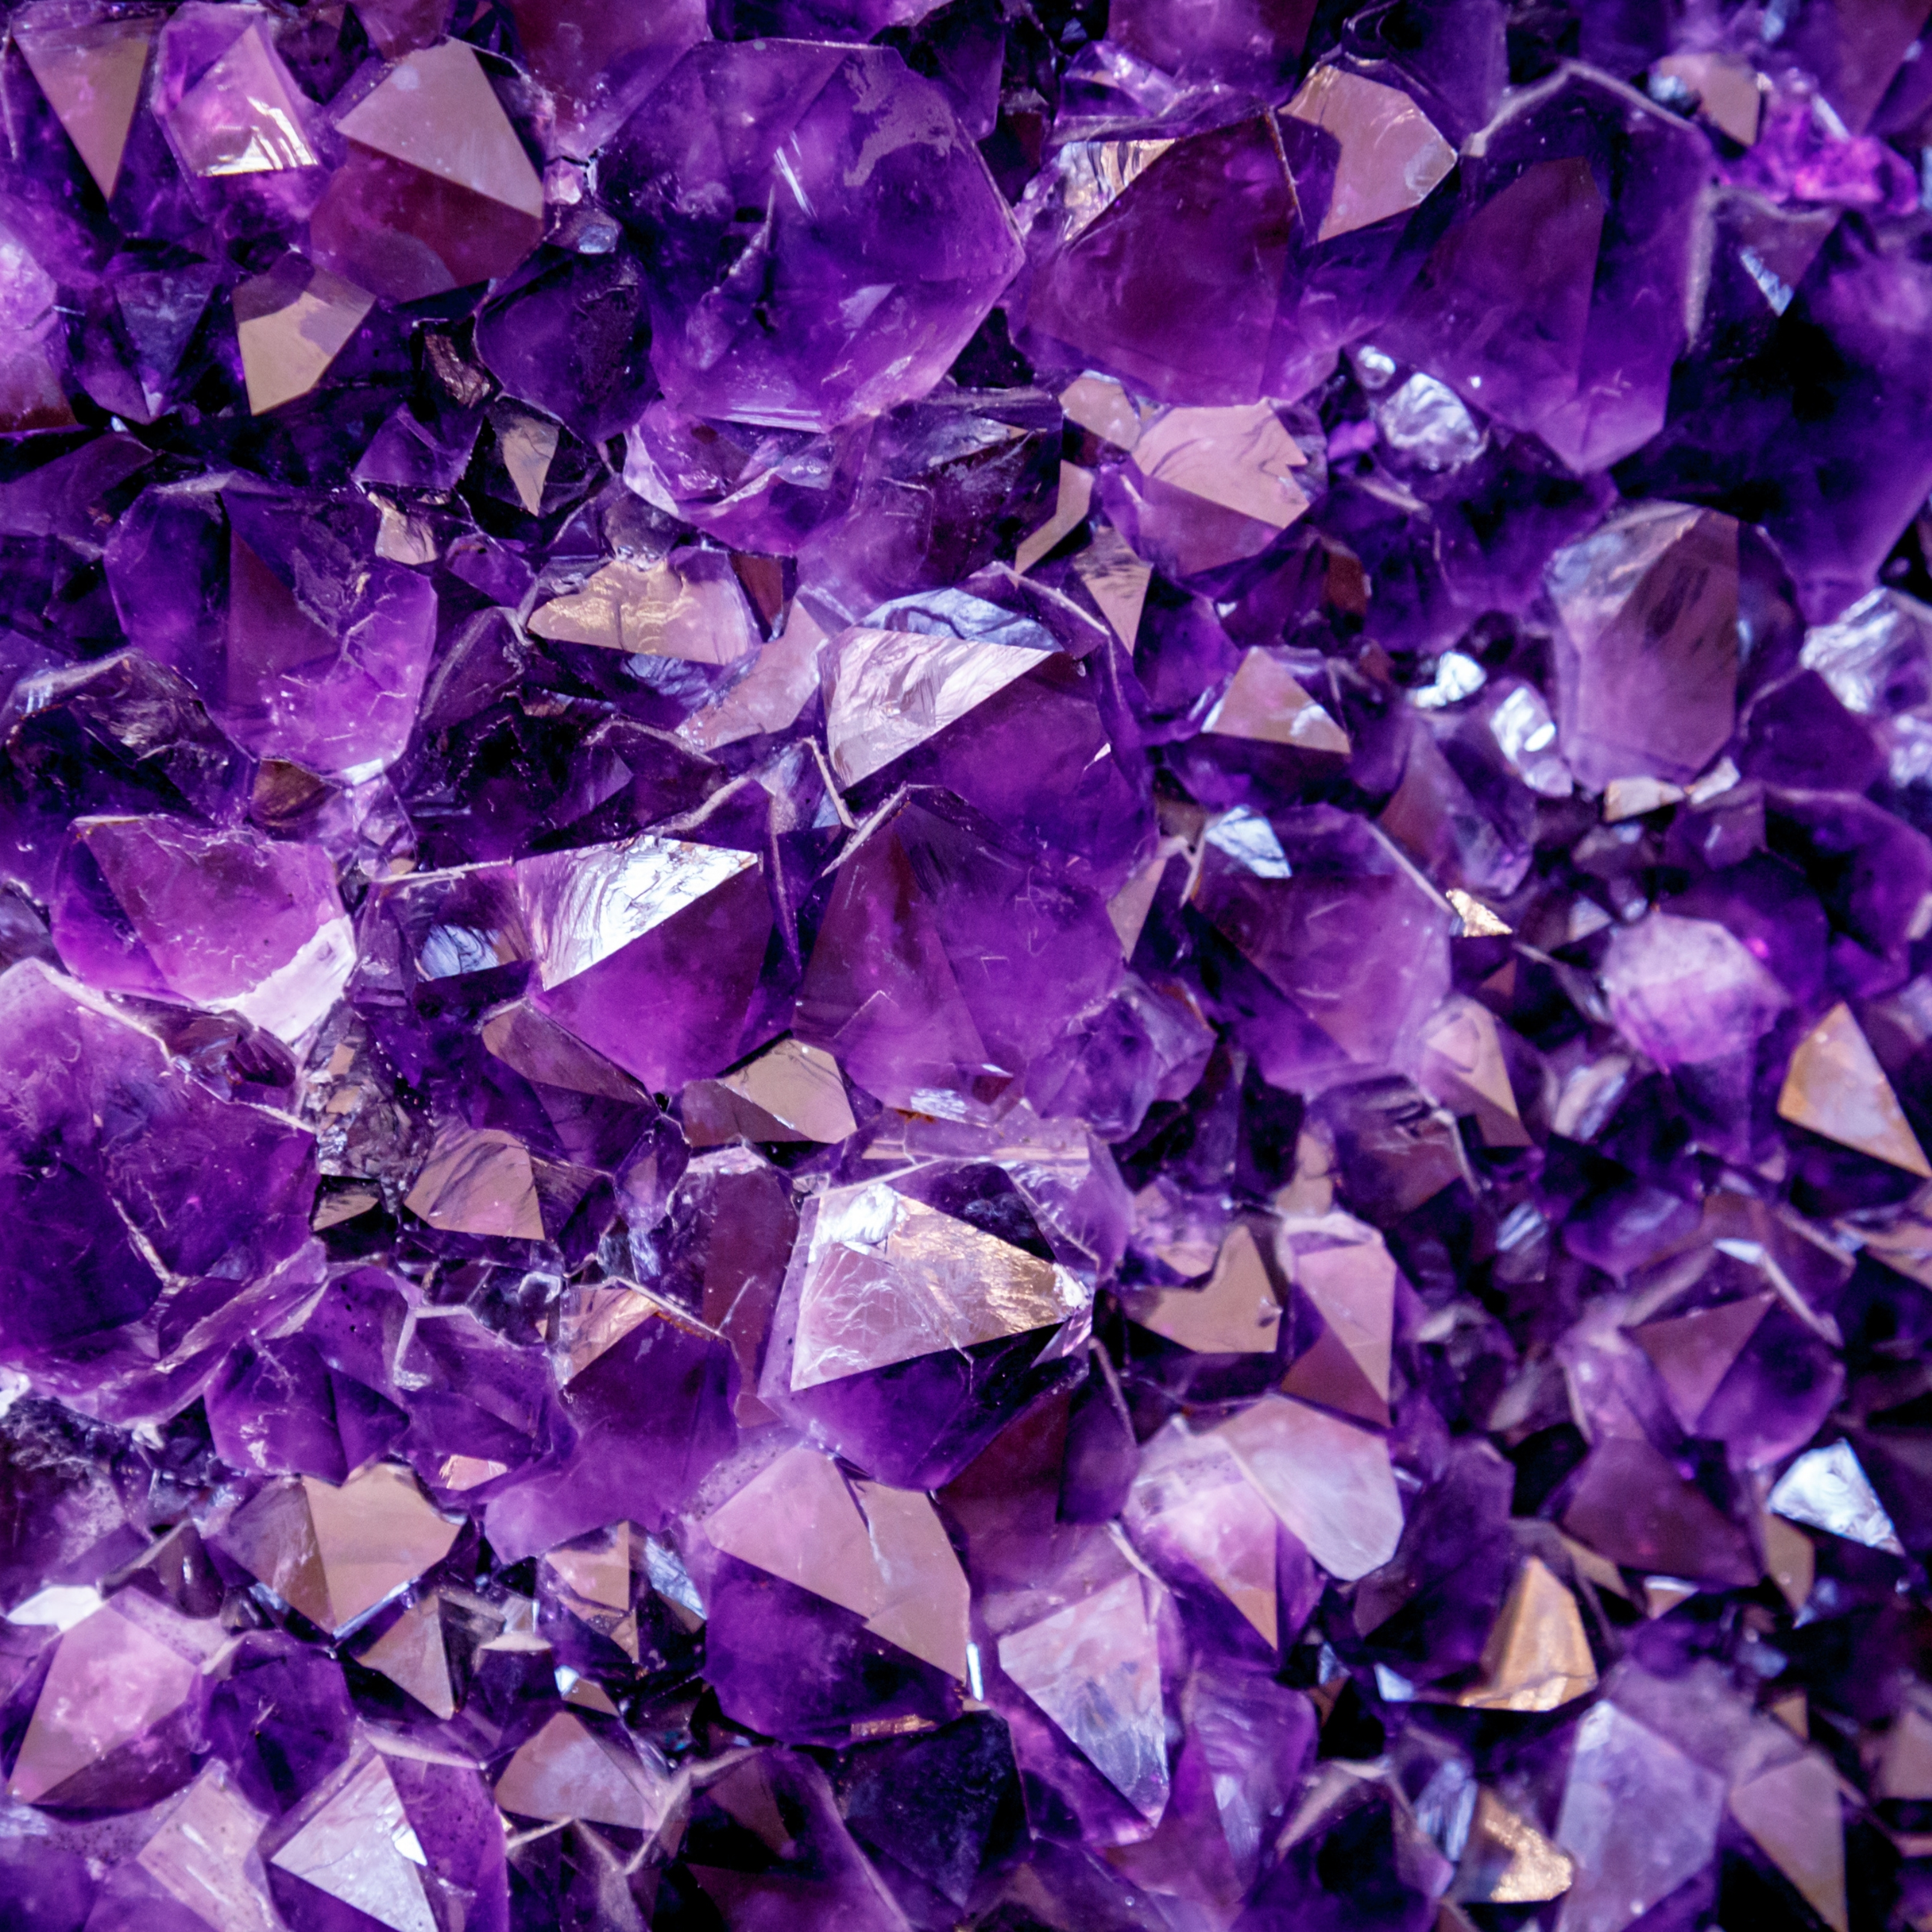 Purple Crystal Stone Precious Gem iPad Wallpaper